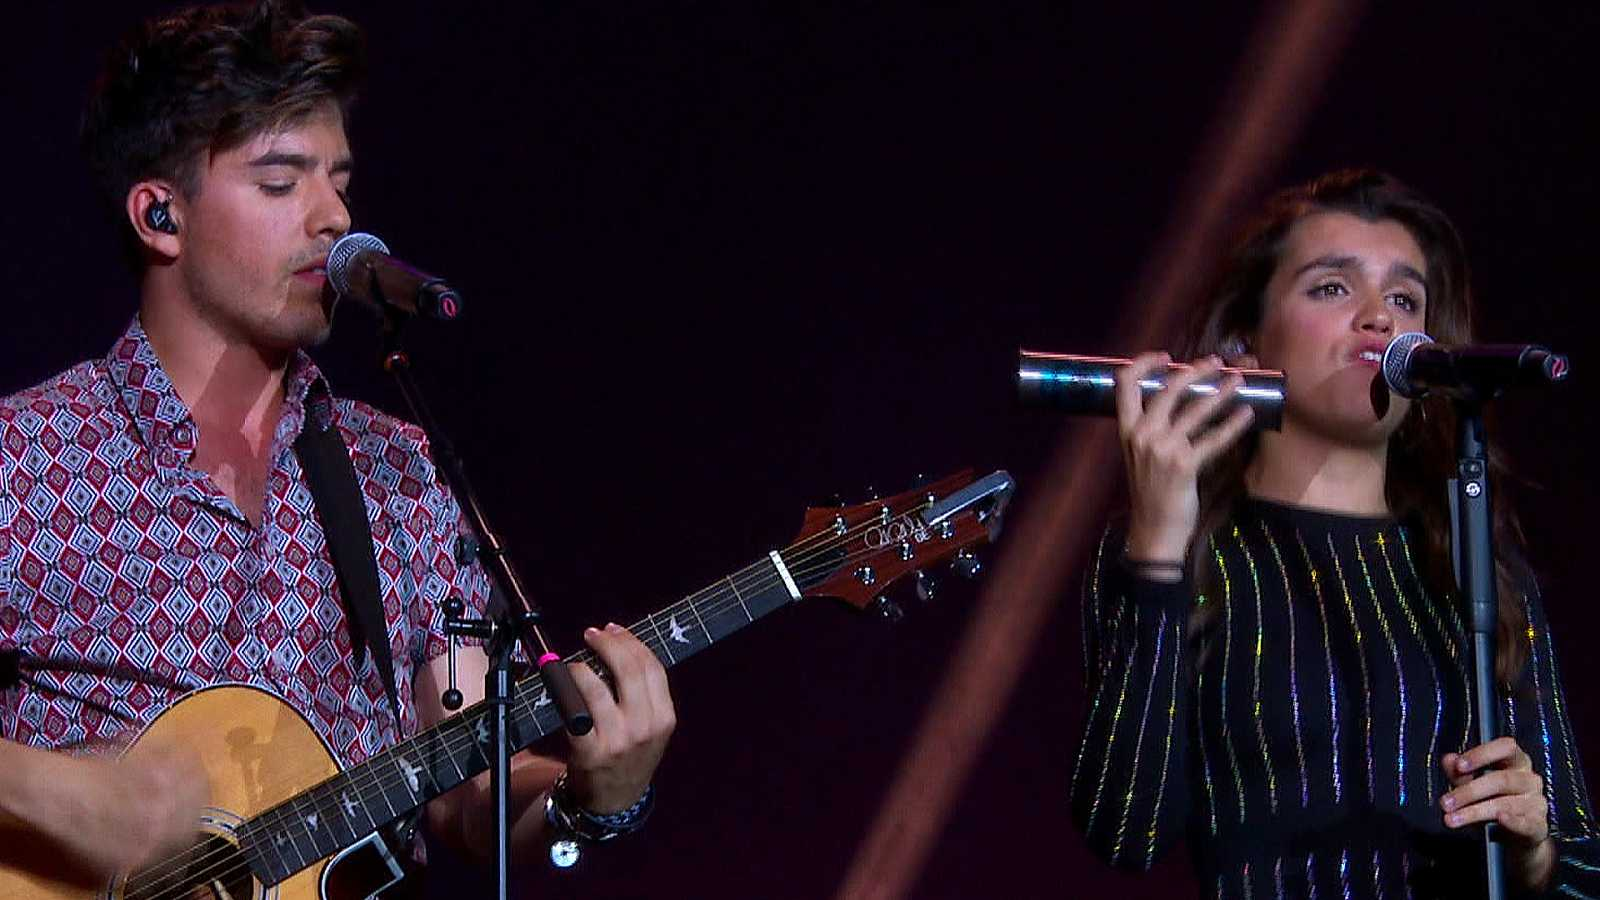 OT Bernabéu - Amaia y Roi cantan 'Shape of you'